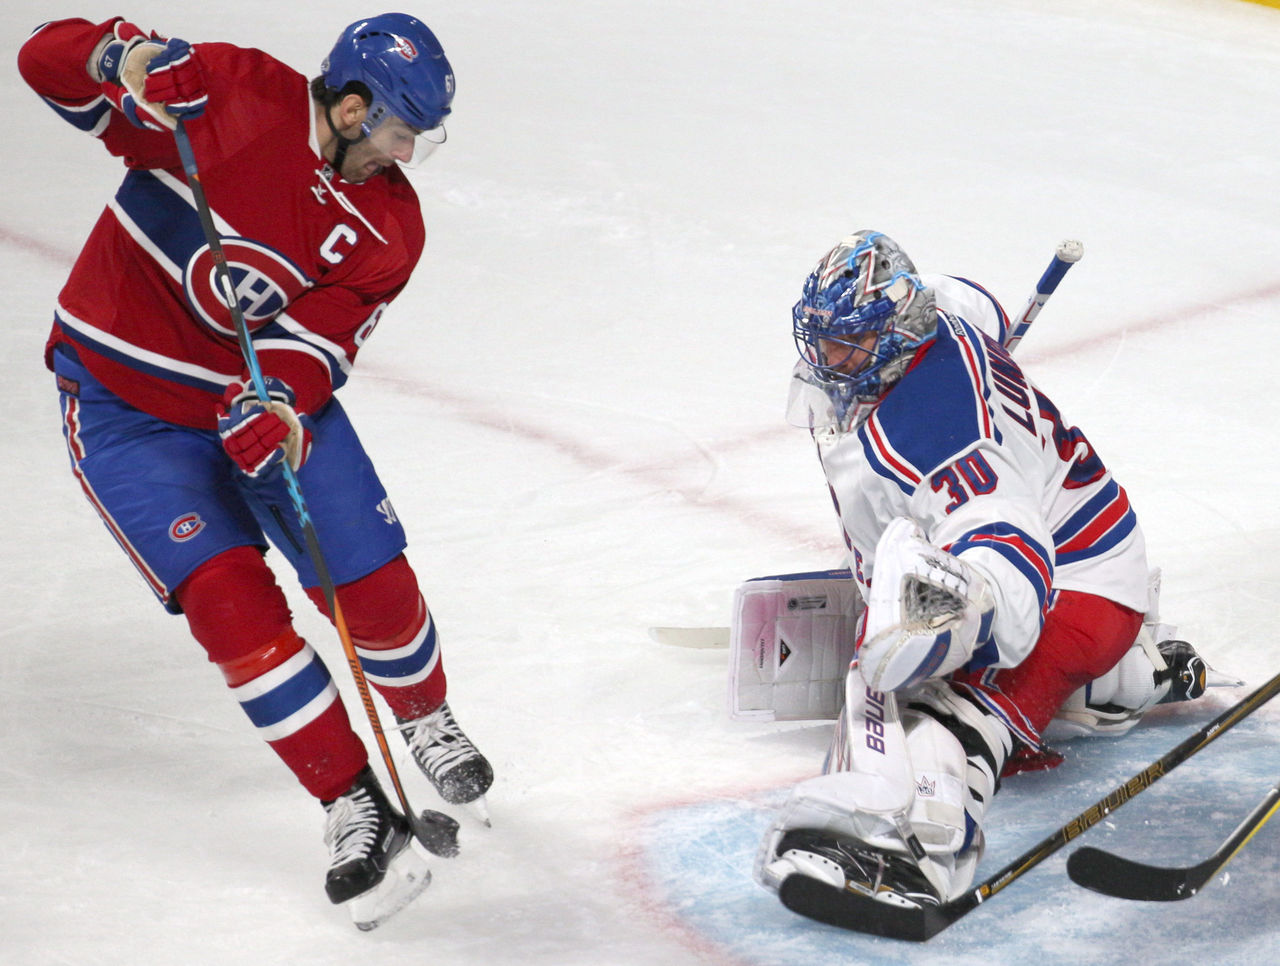 Cropped 2017 04 15t012326z 754219556 nocid rtrmadp 3 nhl stanley cup playoffs new york rangers at montreal canadiens